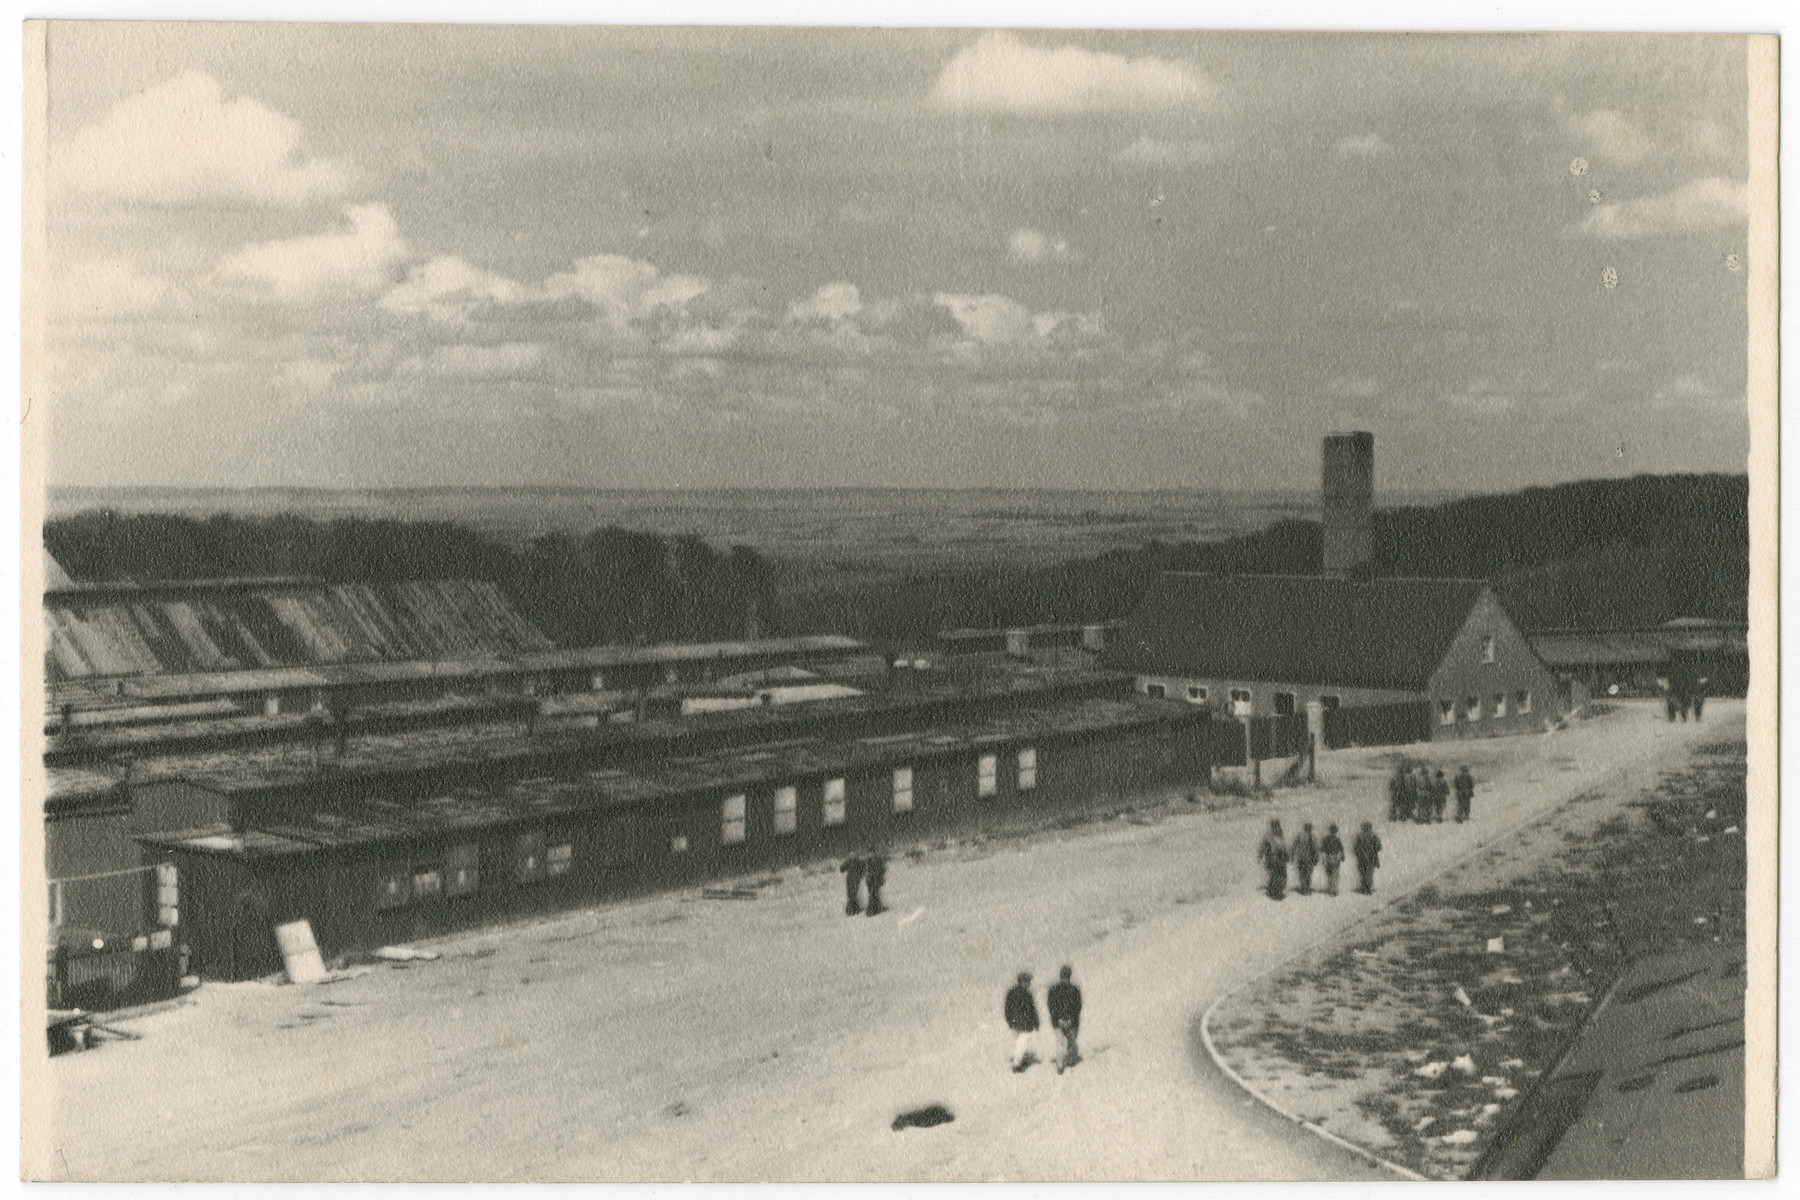 View of the Buchenwald concentration camp following liberation.